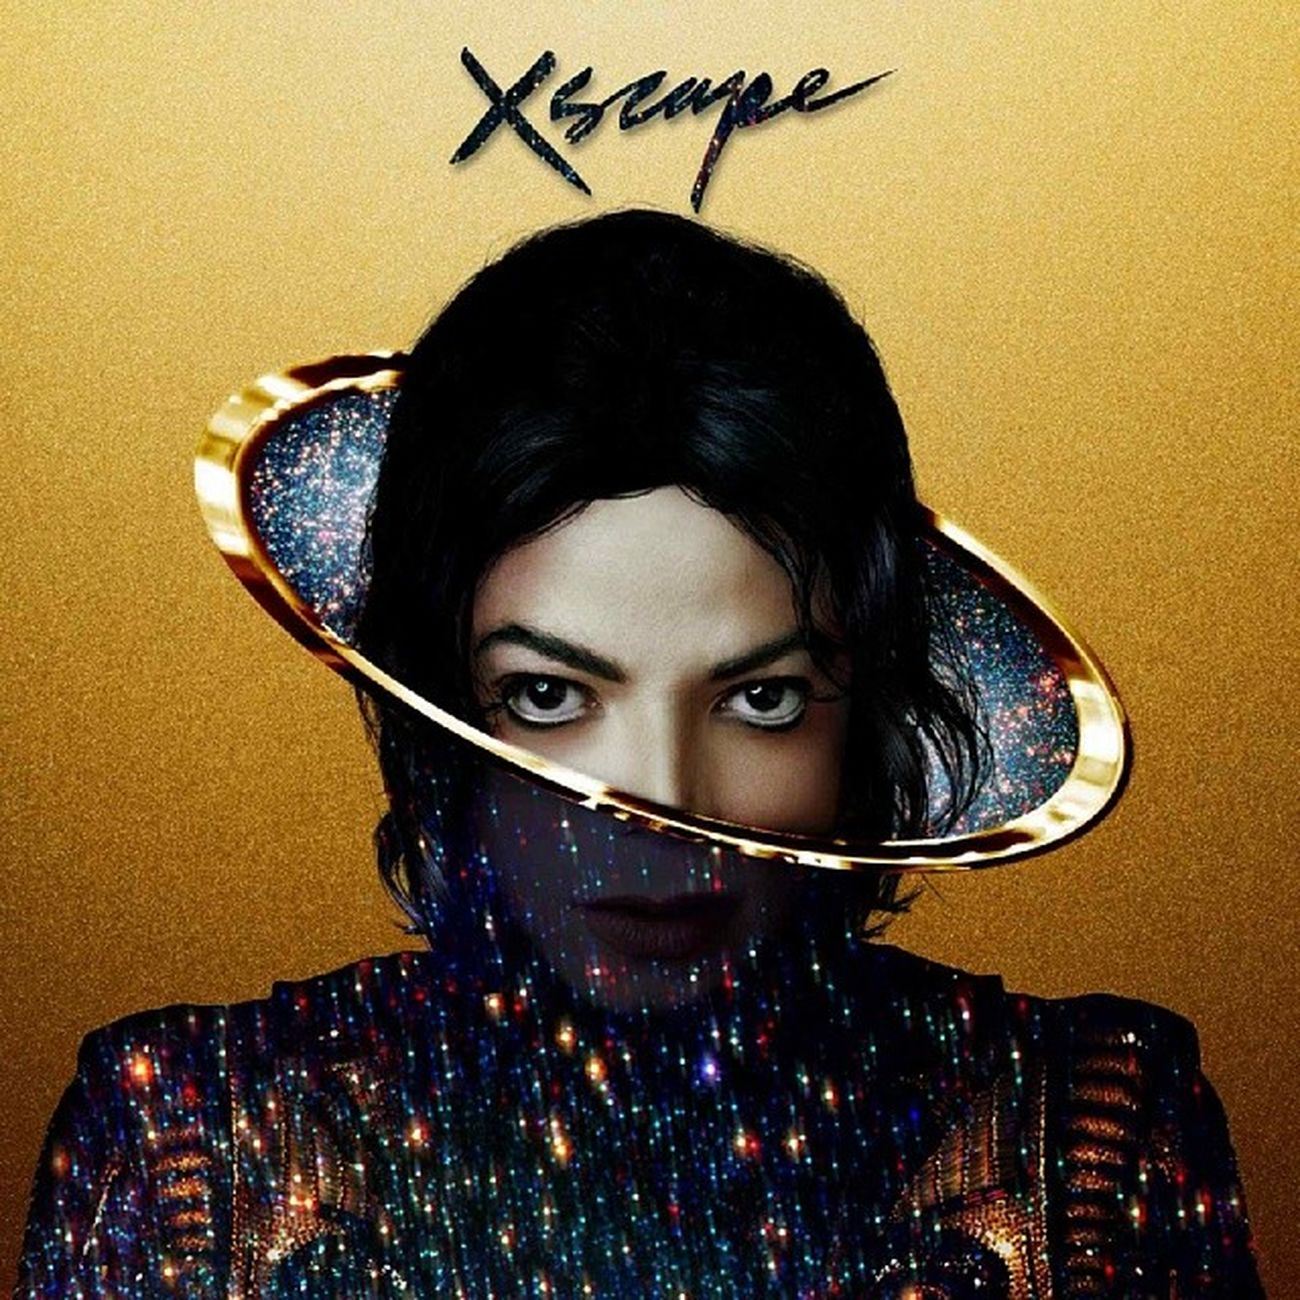 Thanks for the two kings of pop, MJ & JT. ????????❤ Michaeljackson JustinTimberlake Single LoveNeverFeltSoGood xscape album kingofpop forever music pop United good great awesome miss may Friday night song MJ JT life enjoy